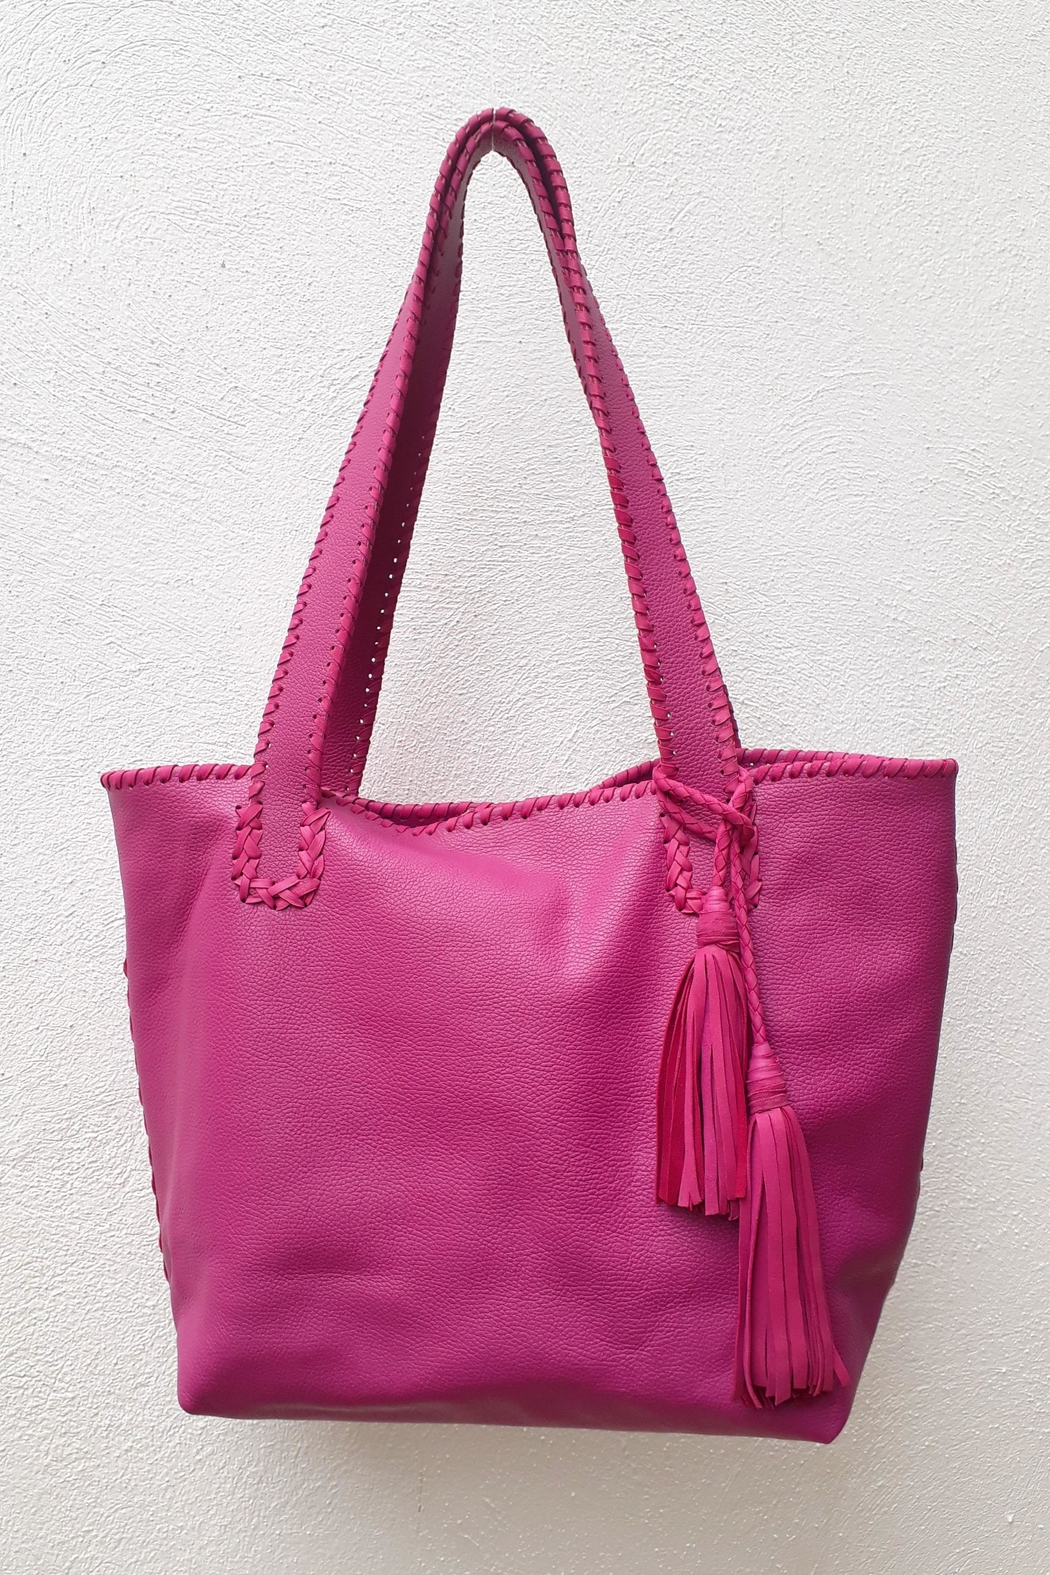 Areias Leather Pink Tote Bag - Main Image